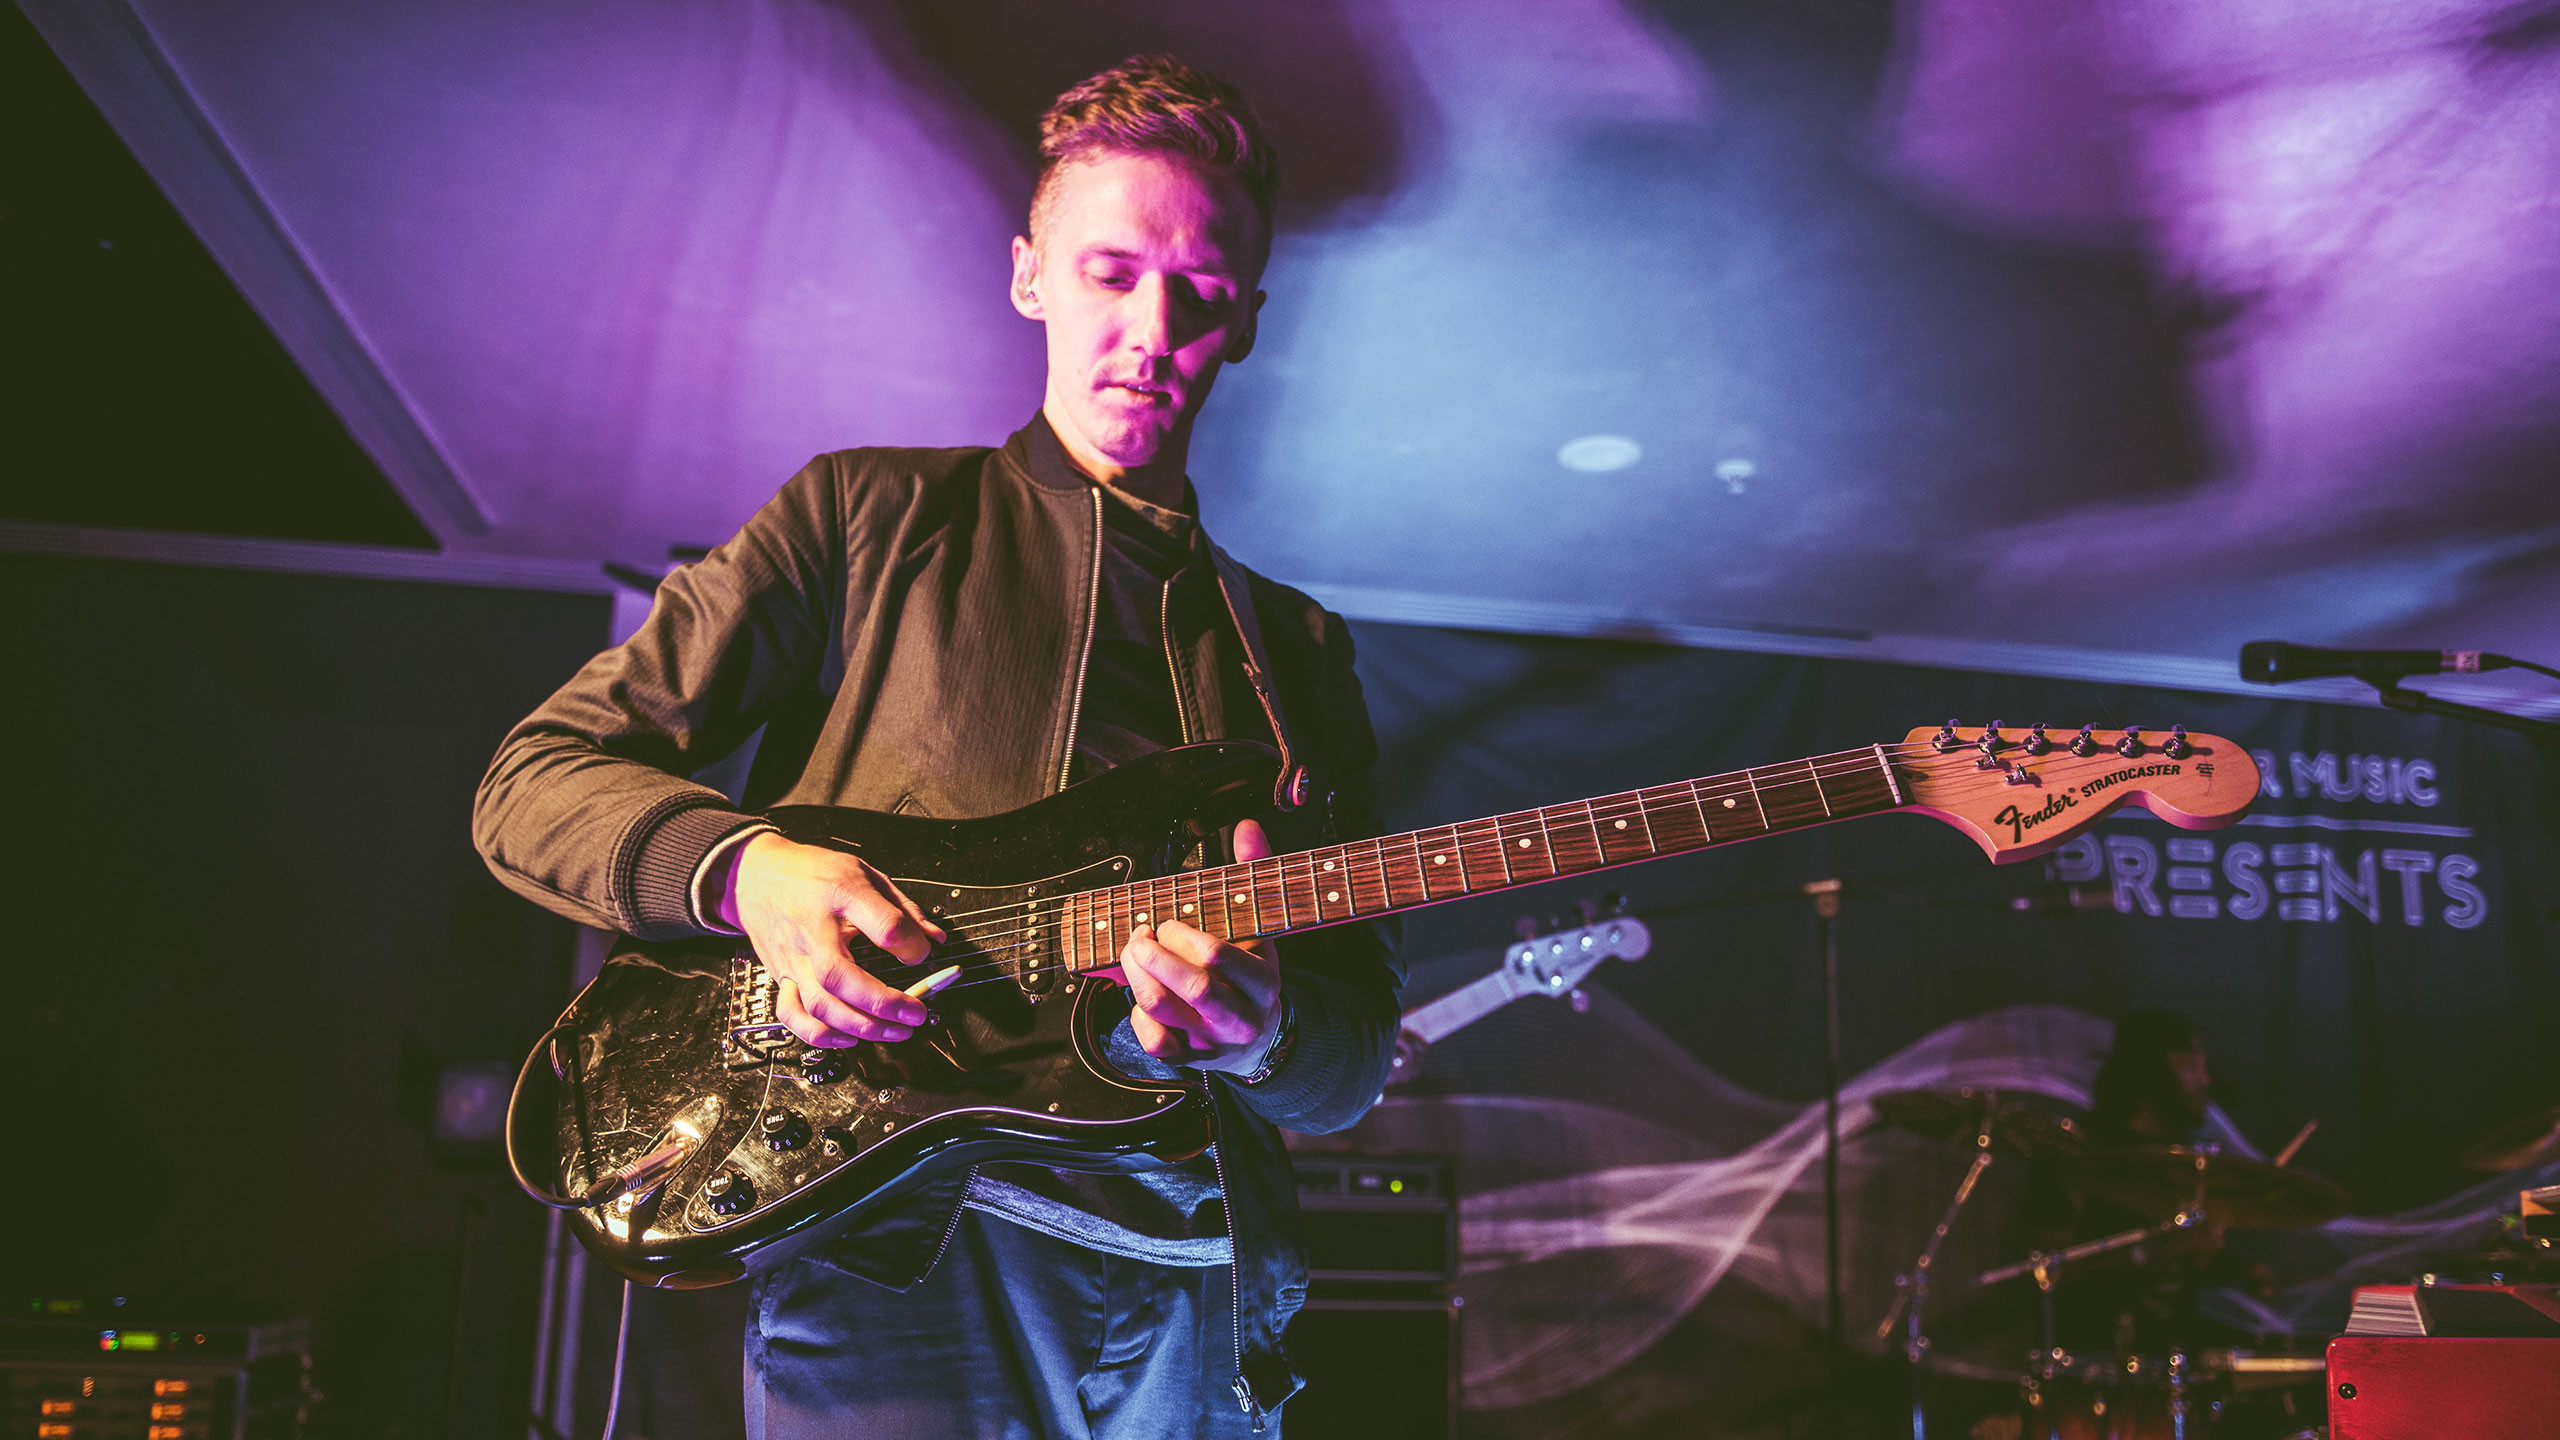 Honne's James Hatcher plays a black guitar on stage at PRS Presents, wearing a dark shirt